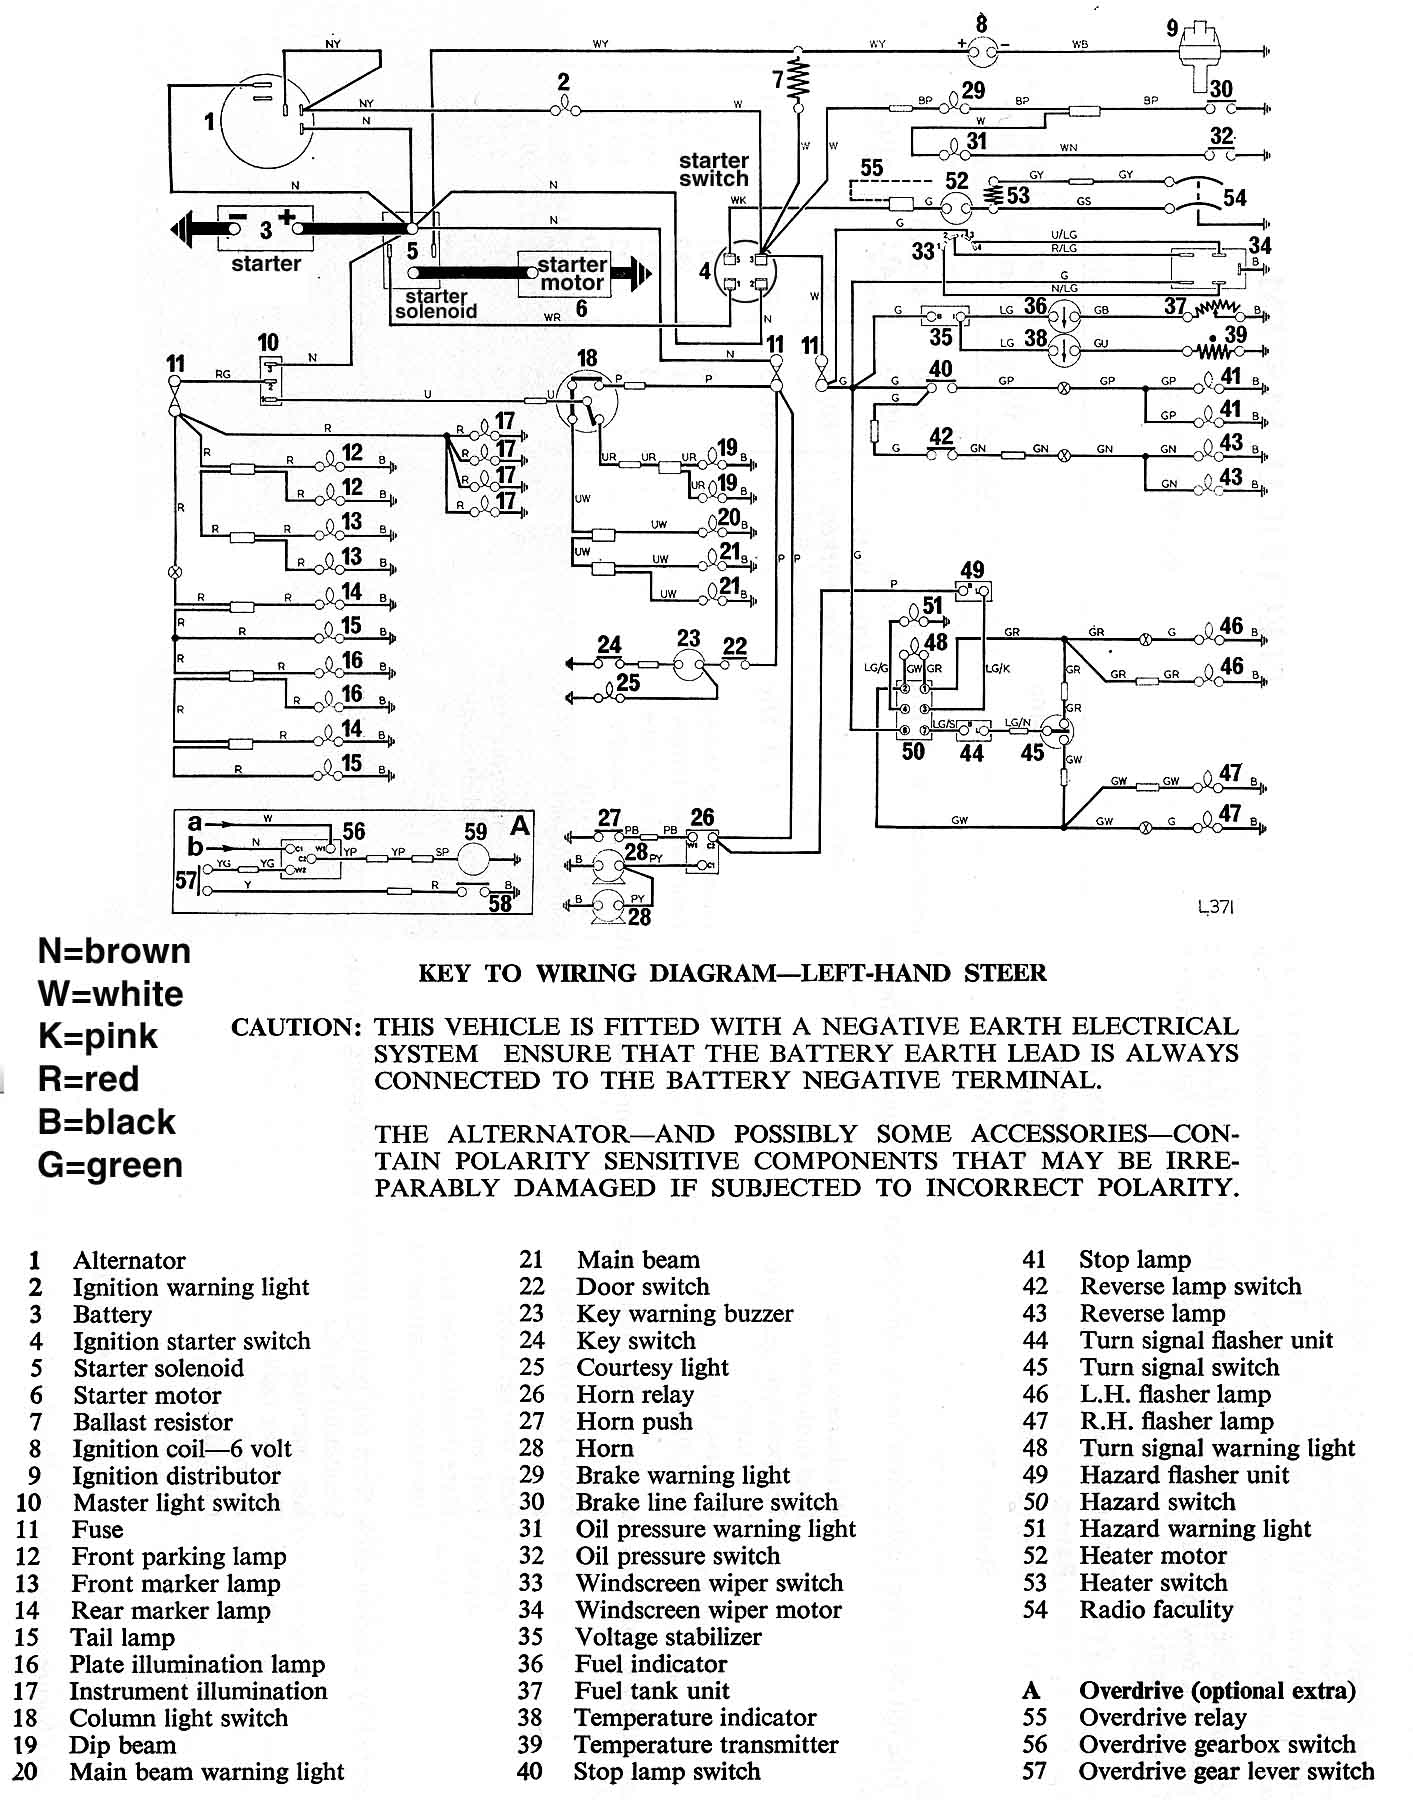 MKIVwire wiring schematics and diagrams triumph spitfire, gt6, herald 1980 triumph spitfire wiring diagram at virtualis.co